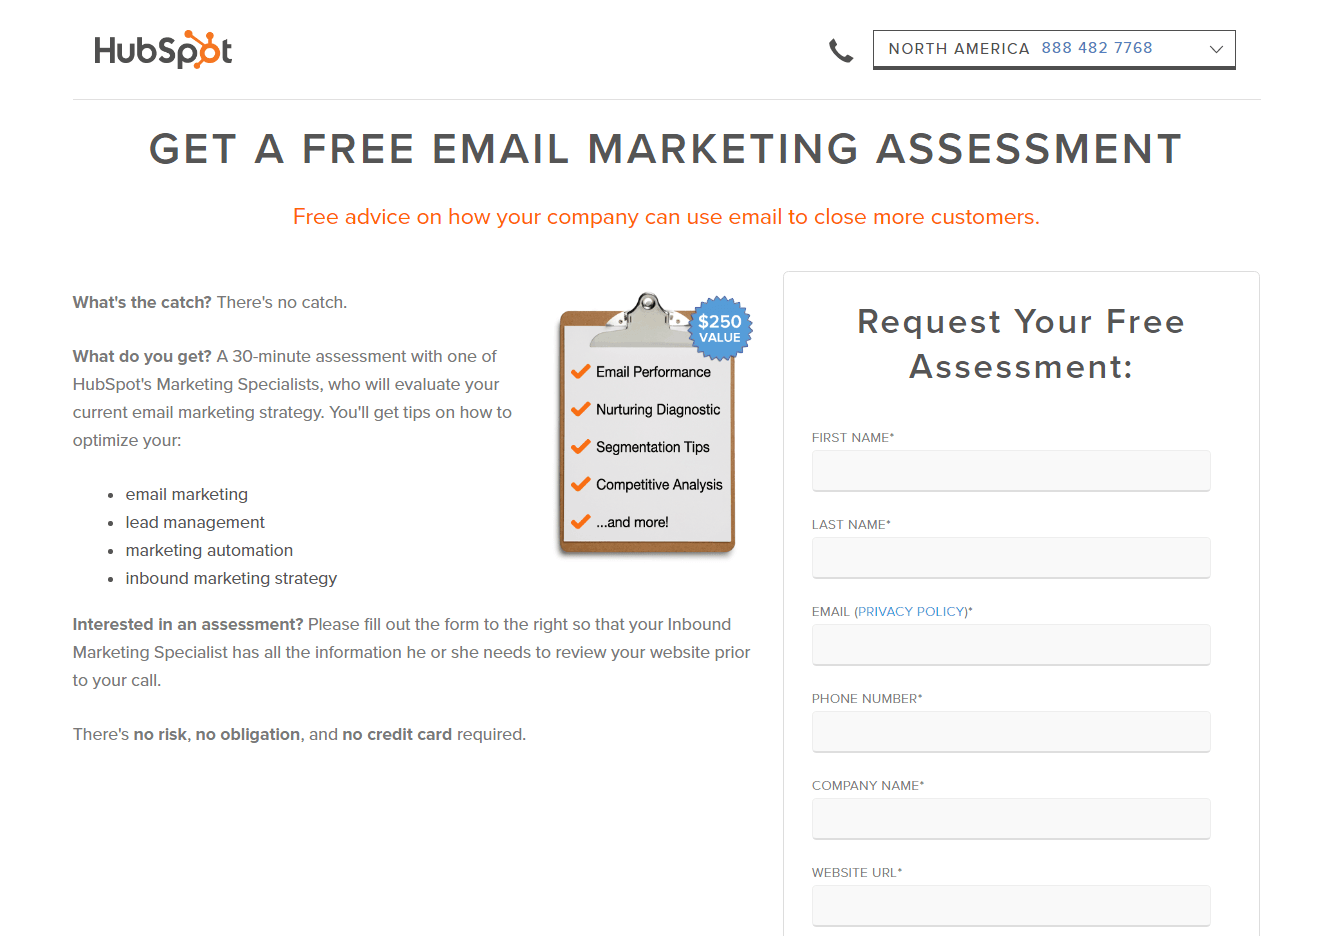 HubSpot Email Assessment post-click landing page Example